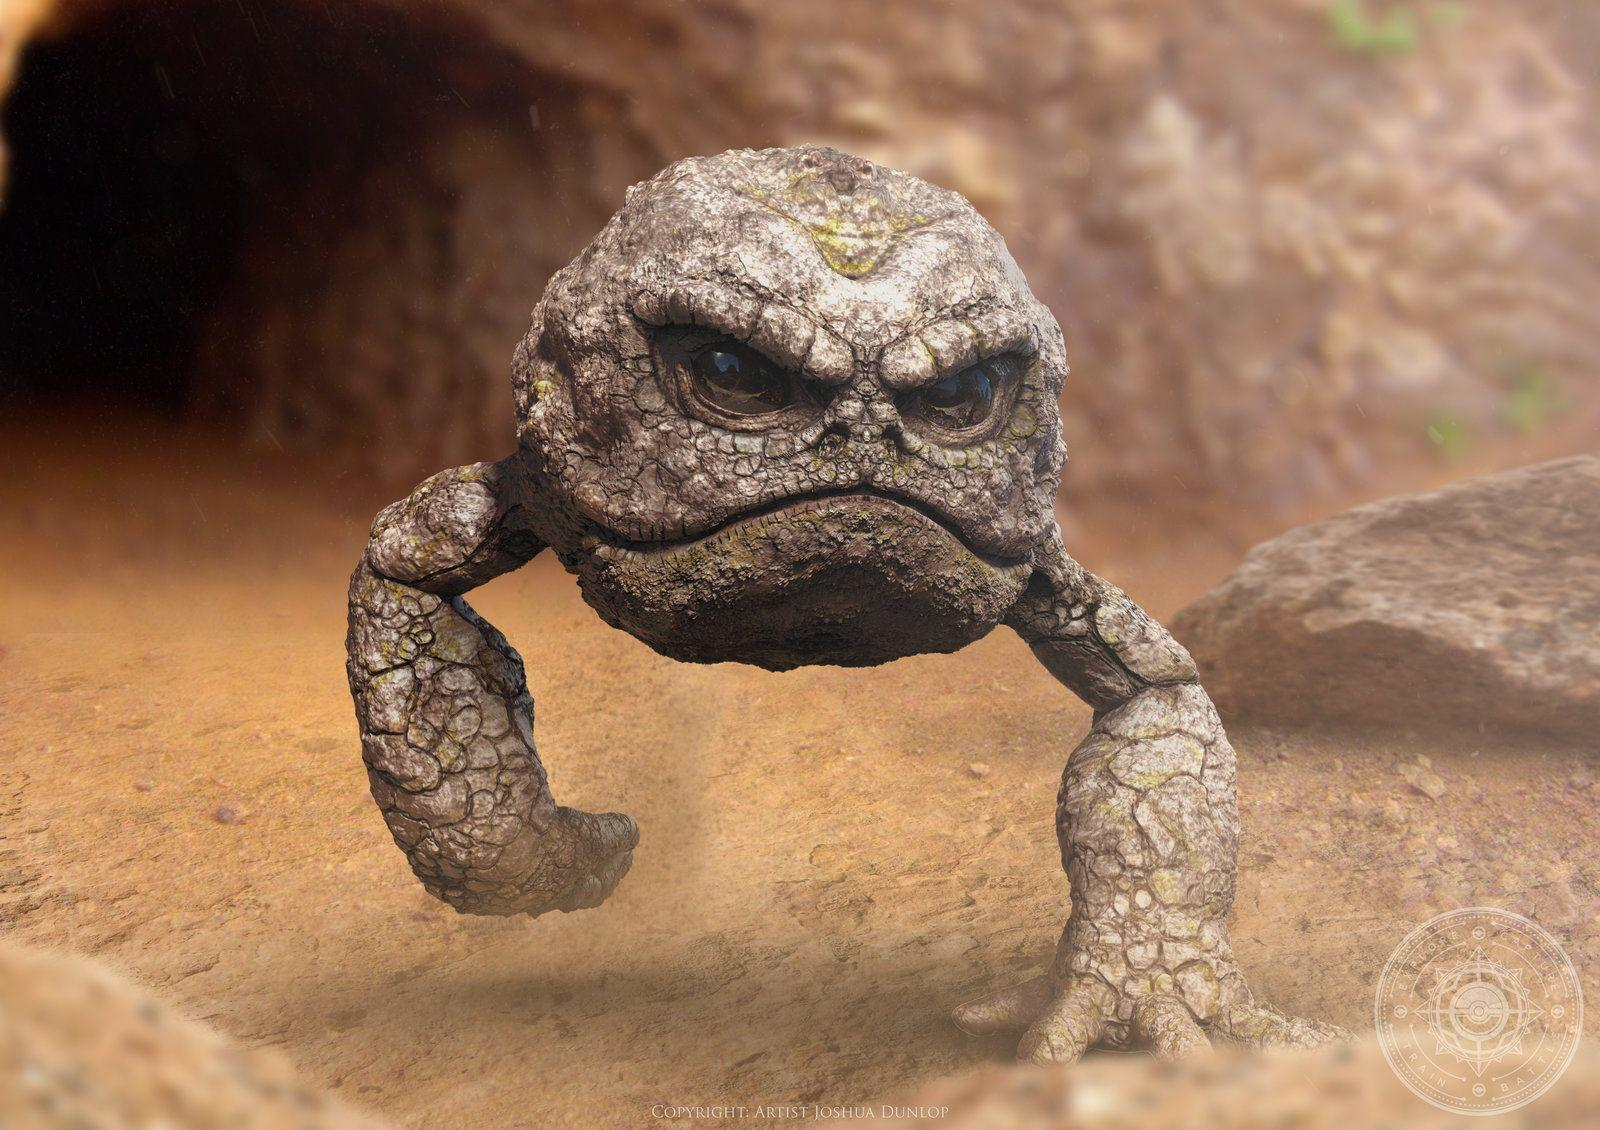 Geodude by JoshuaDunlop on DeviantArt